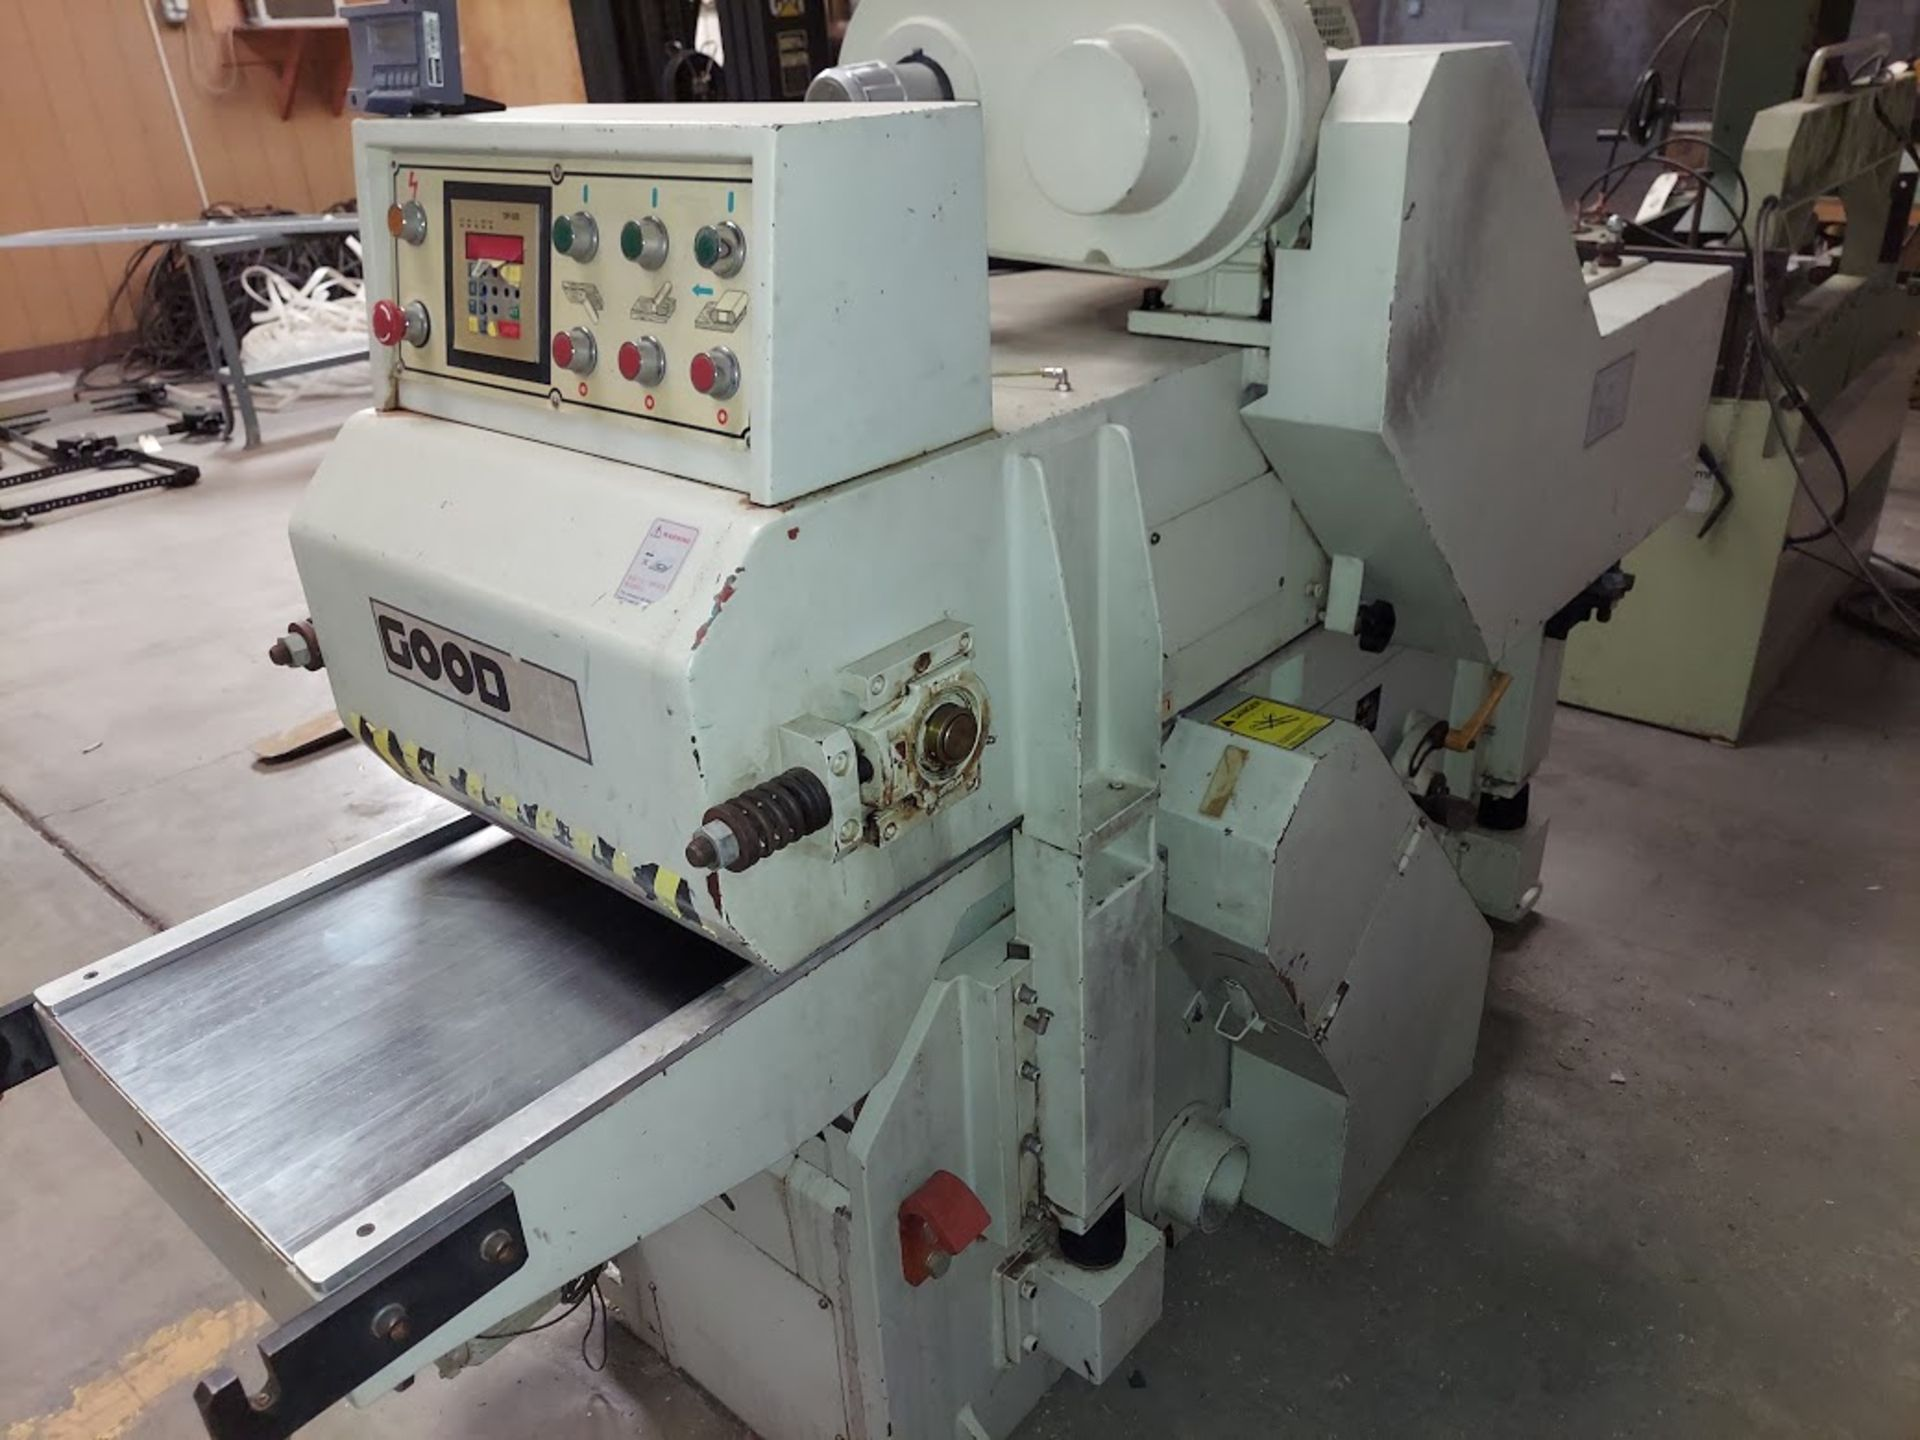 "Good Tek GT-400B Two Sided Planer, Top & Bottom 16"" Spiral Cutterheads, 10 Hp 230/460 Volts Top - Image 4 of 7"